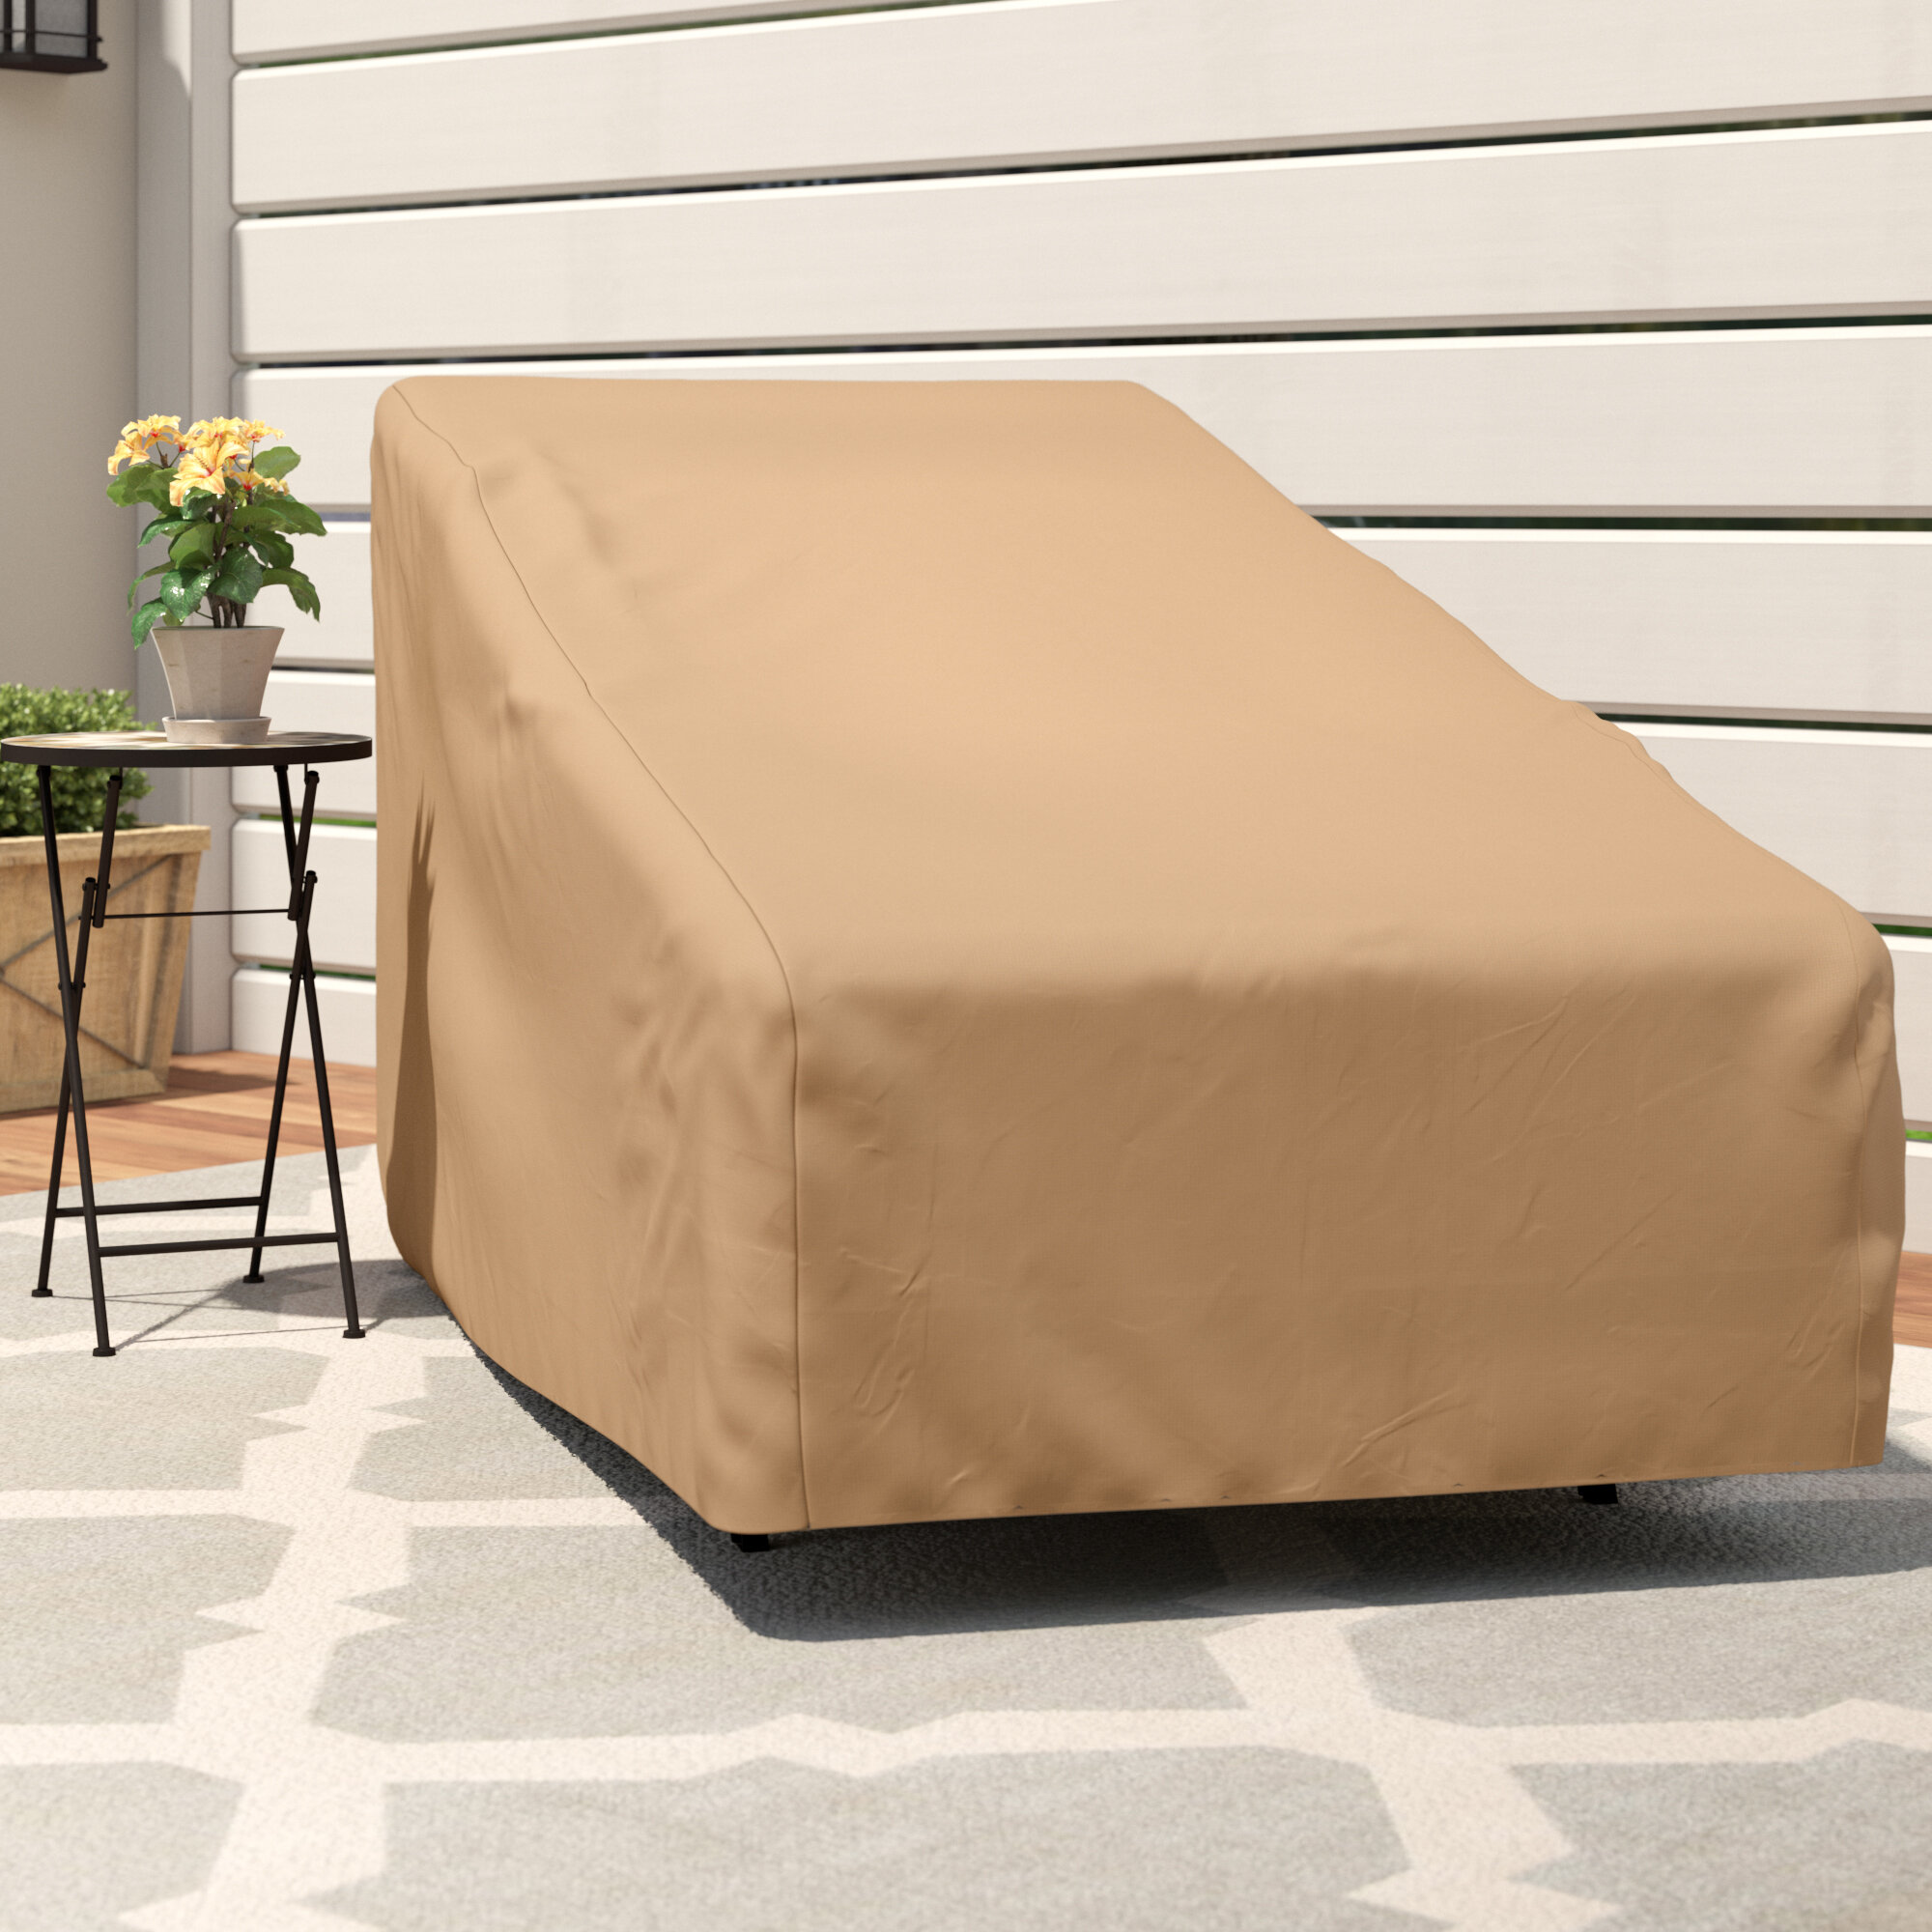 Nicholson patio chaise lounge cover reviews joss main